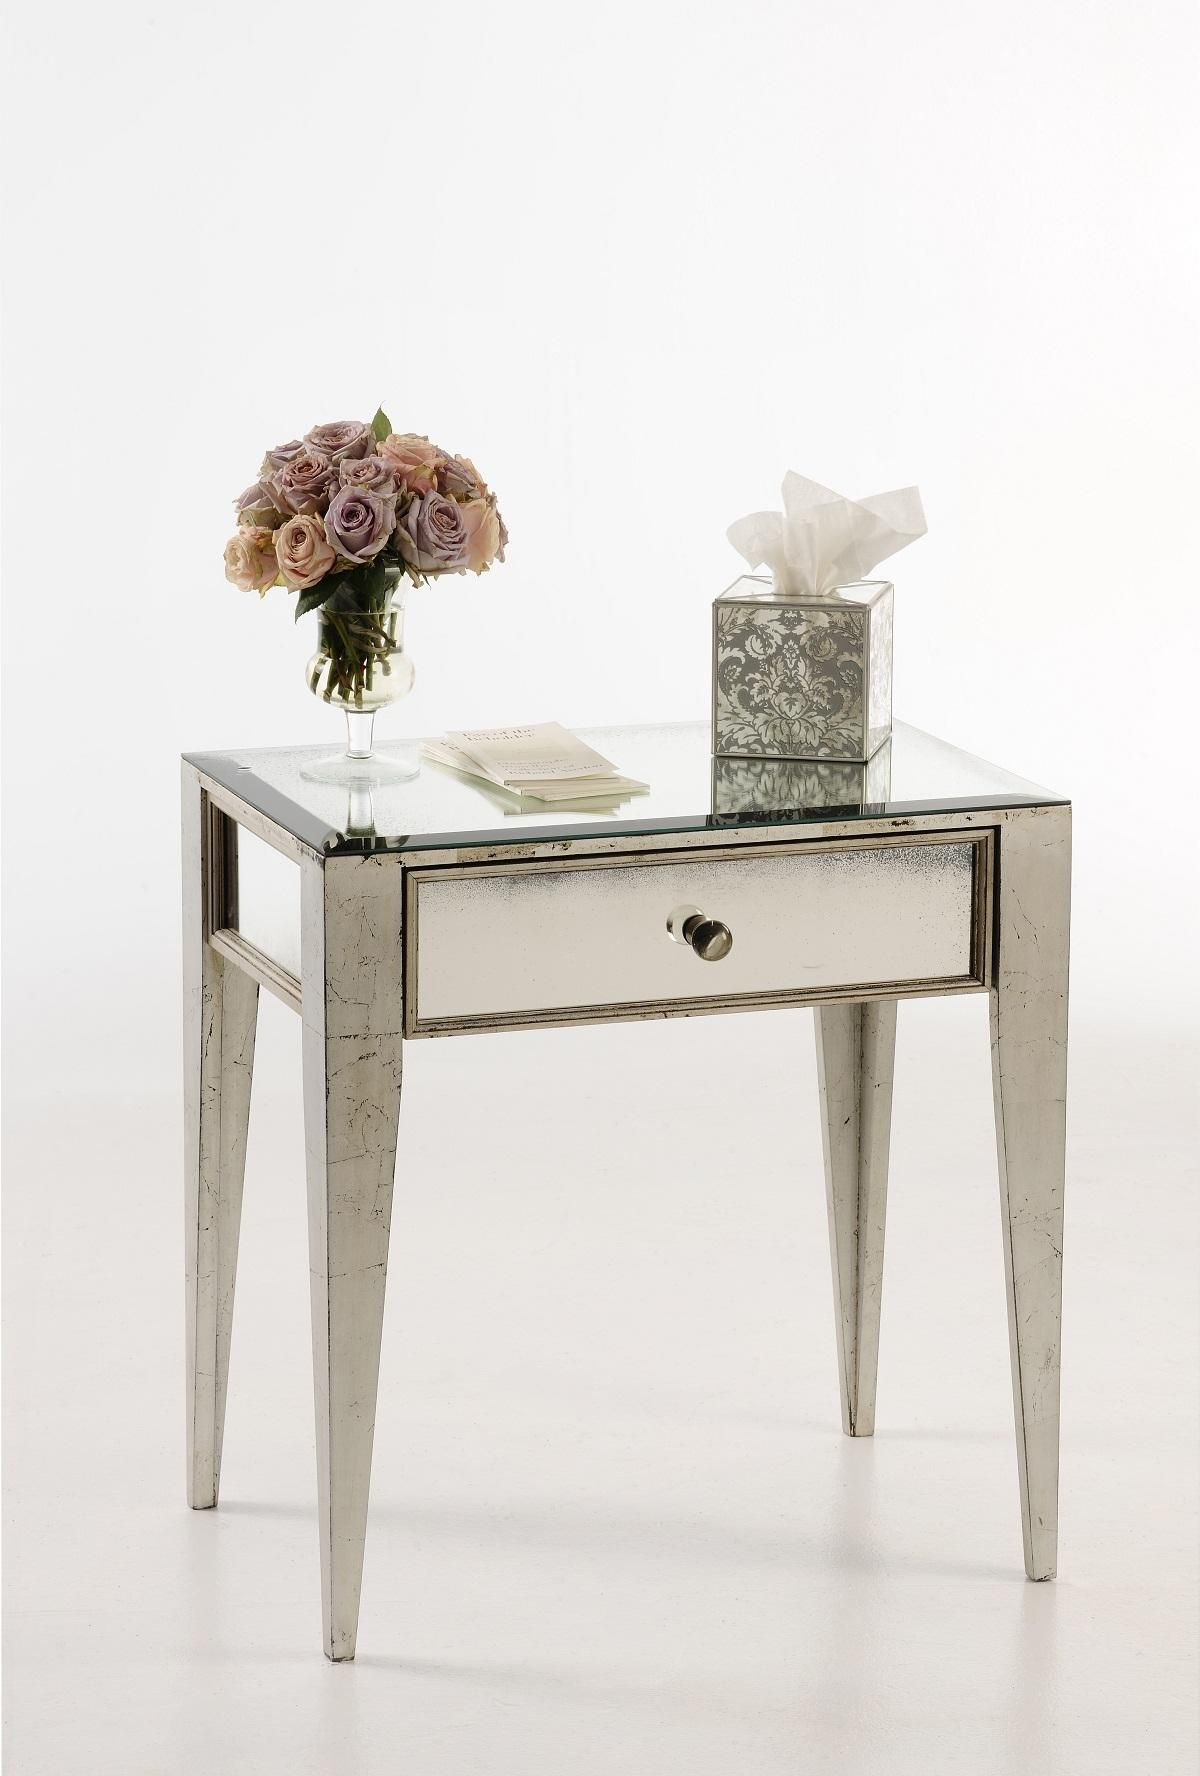 Mirrors Behind Bedside Tables: Mirror Drawers, Beveled Mirror, Table